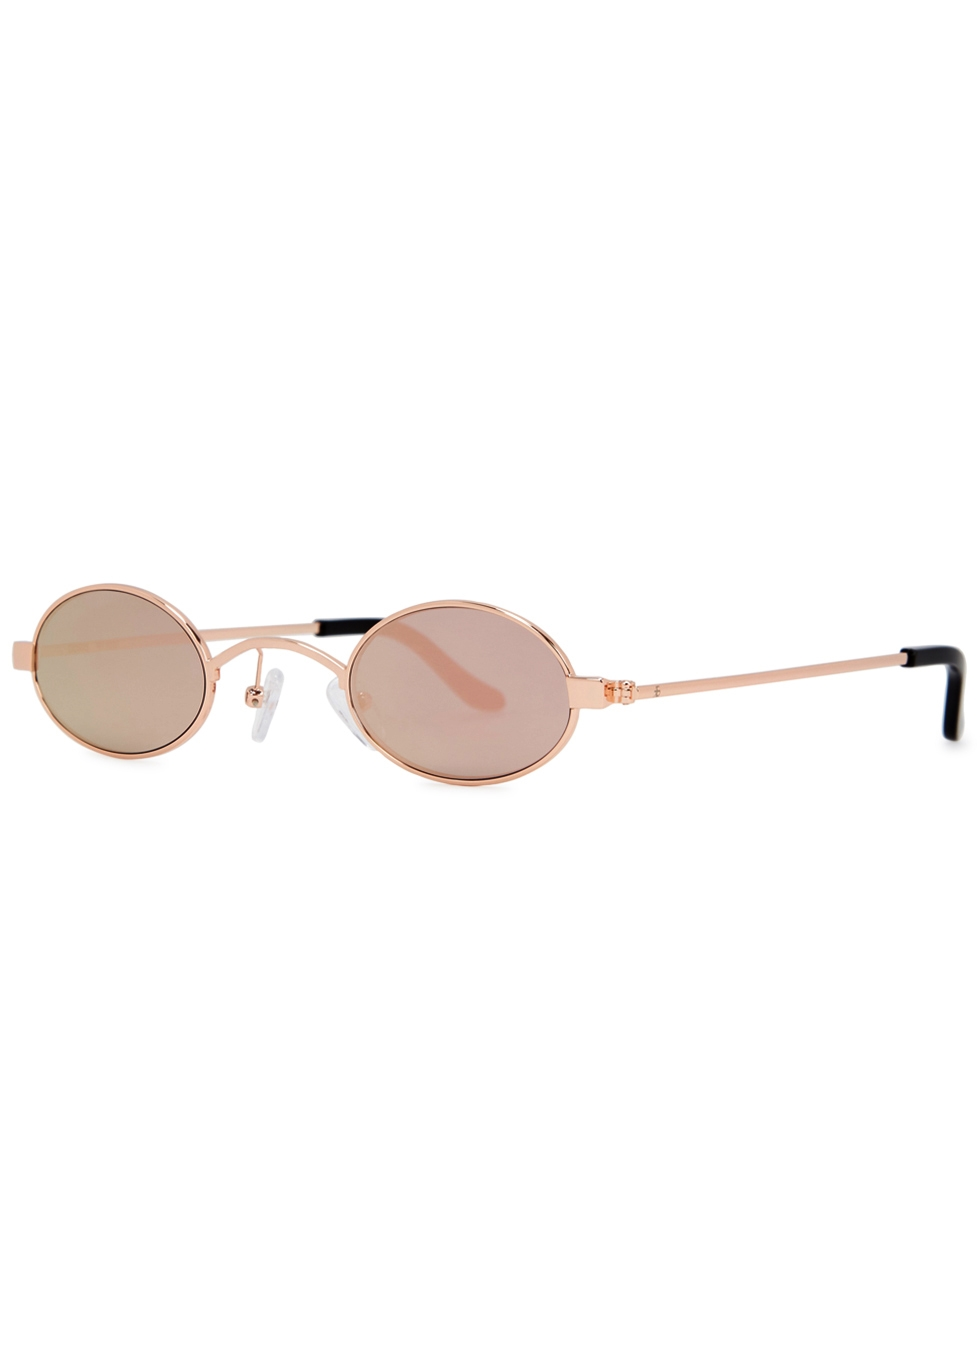 ROBERI AND FRAUD Doris Round-Frame Sunglasses in Gold